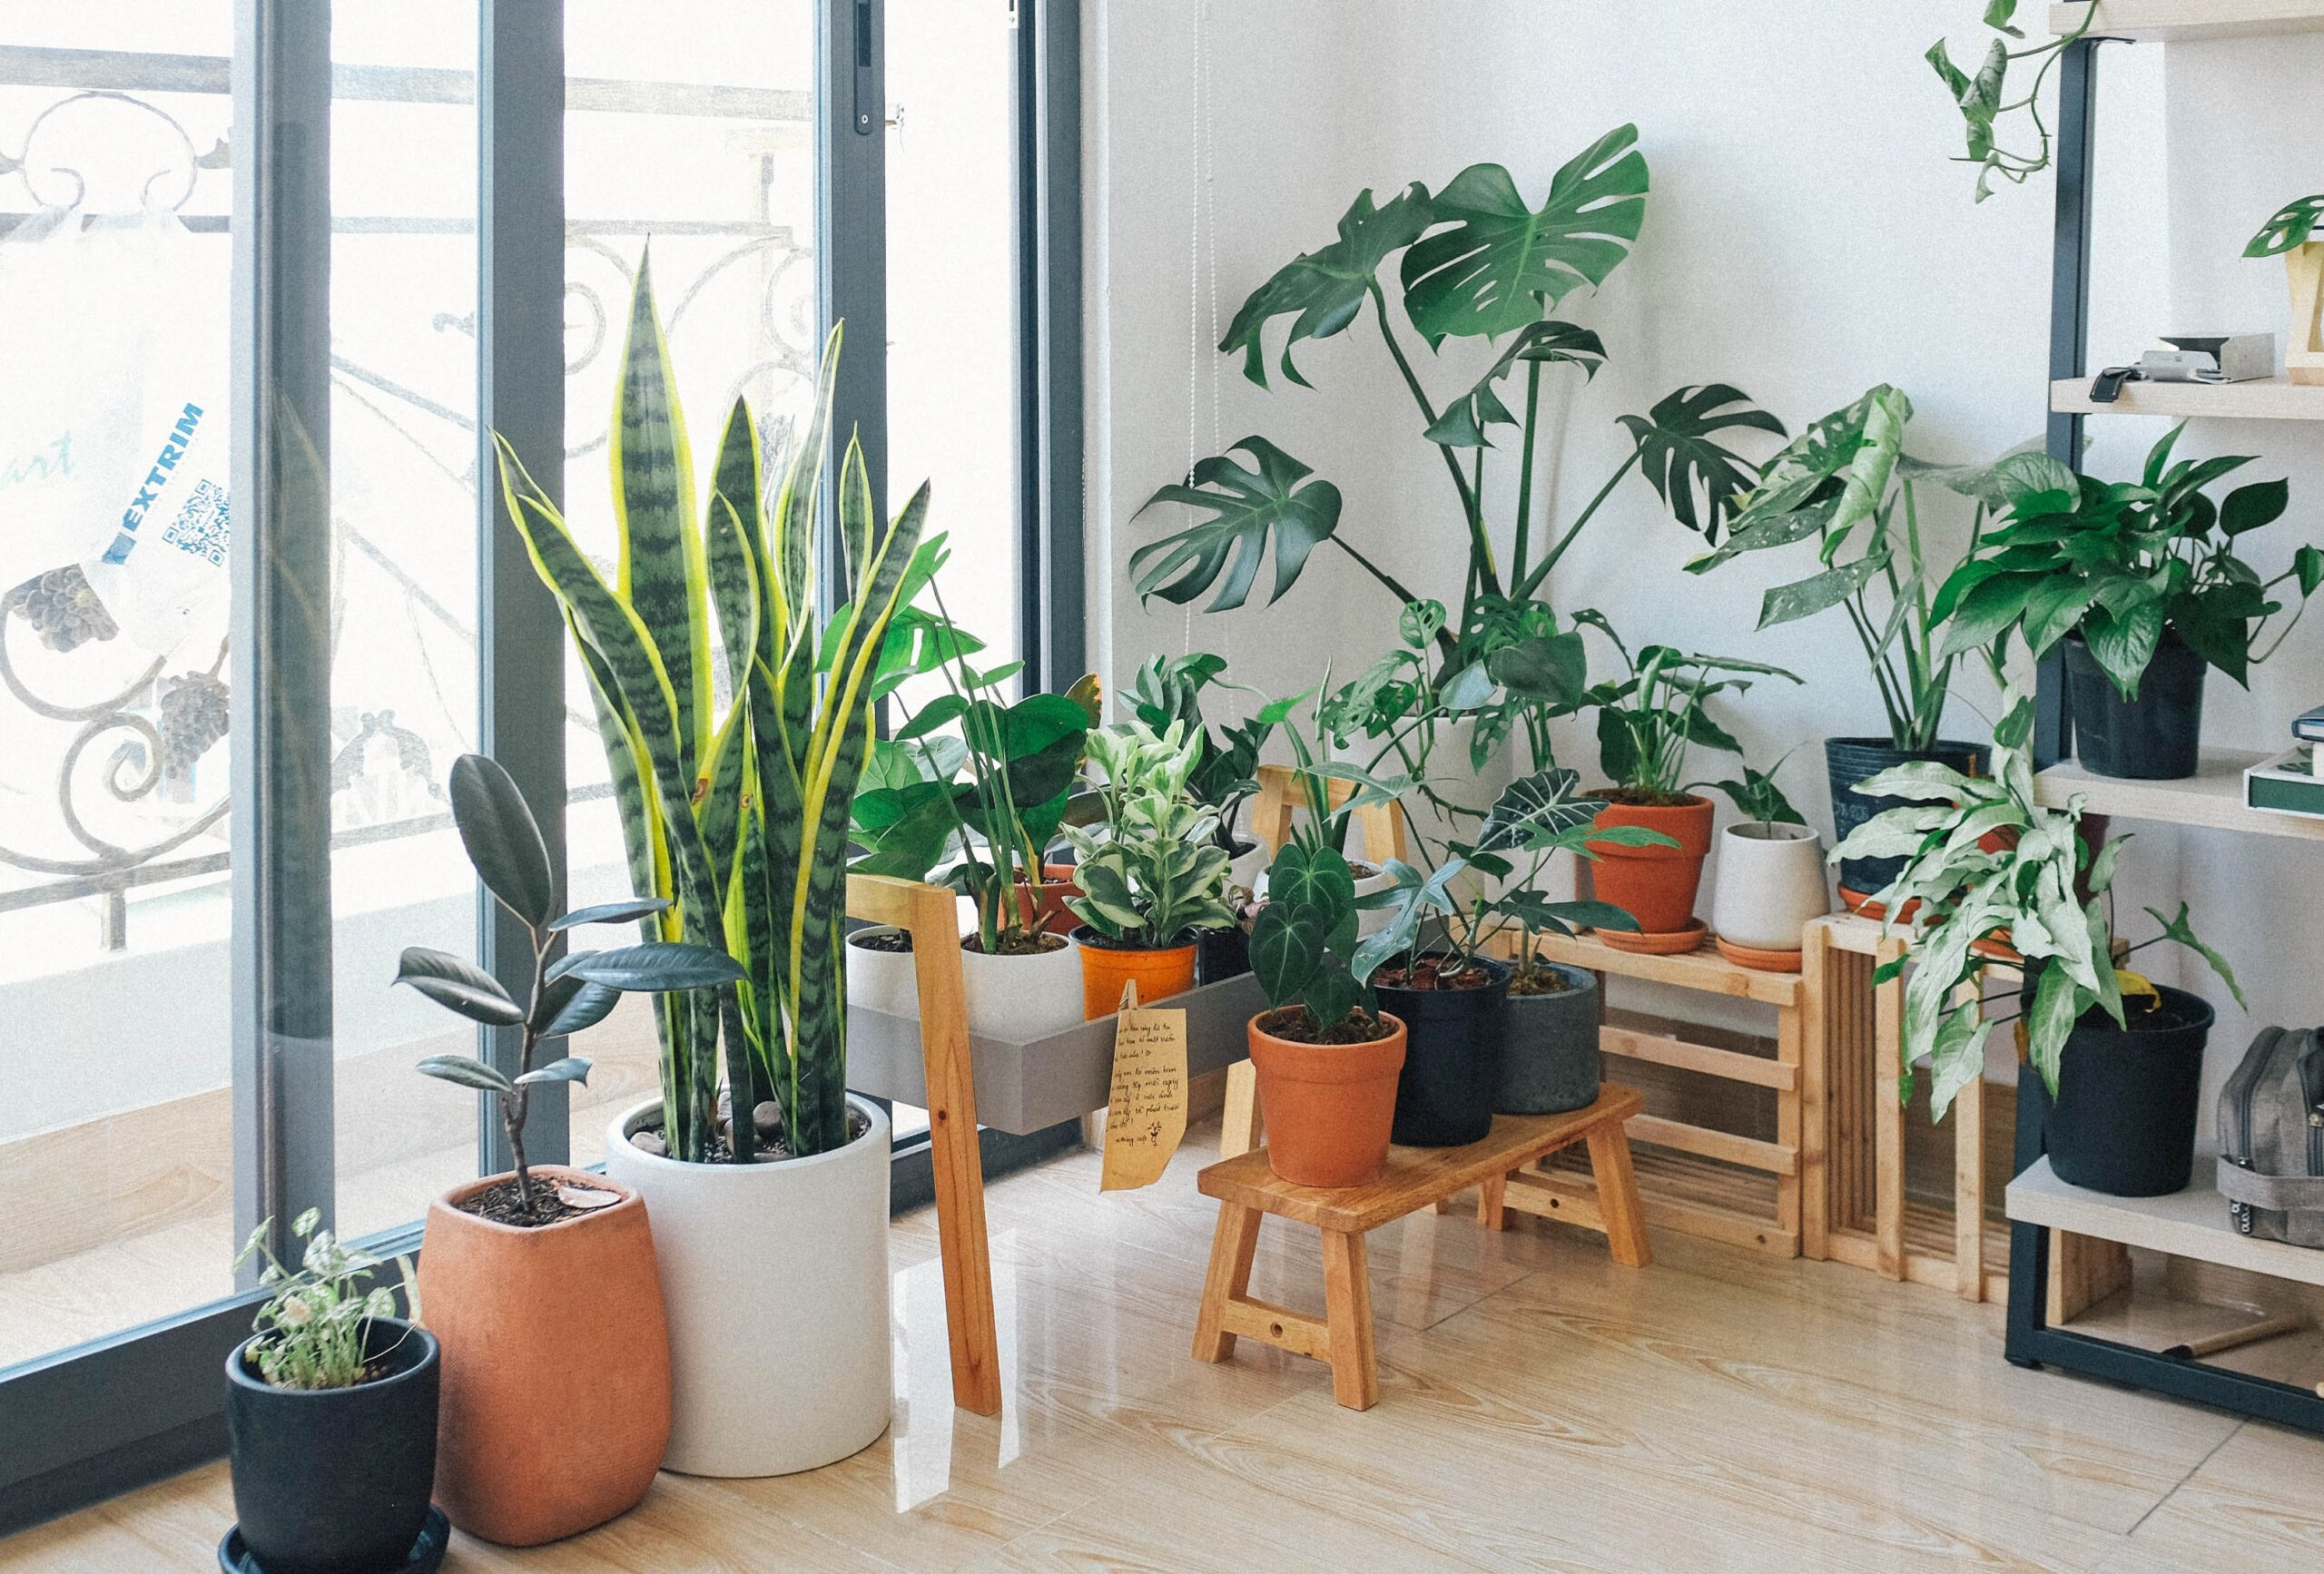 A variety of house plants sit in front of a window letting in bright light